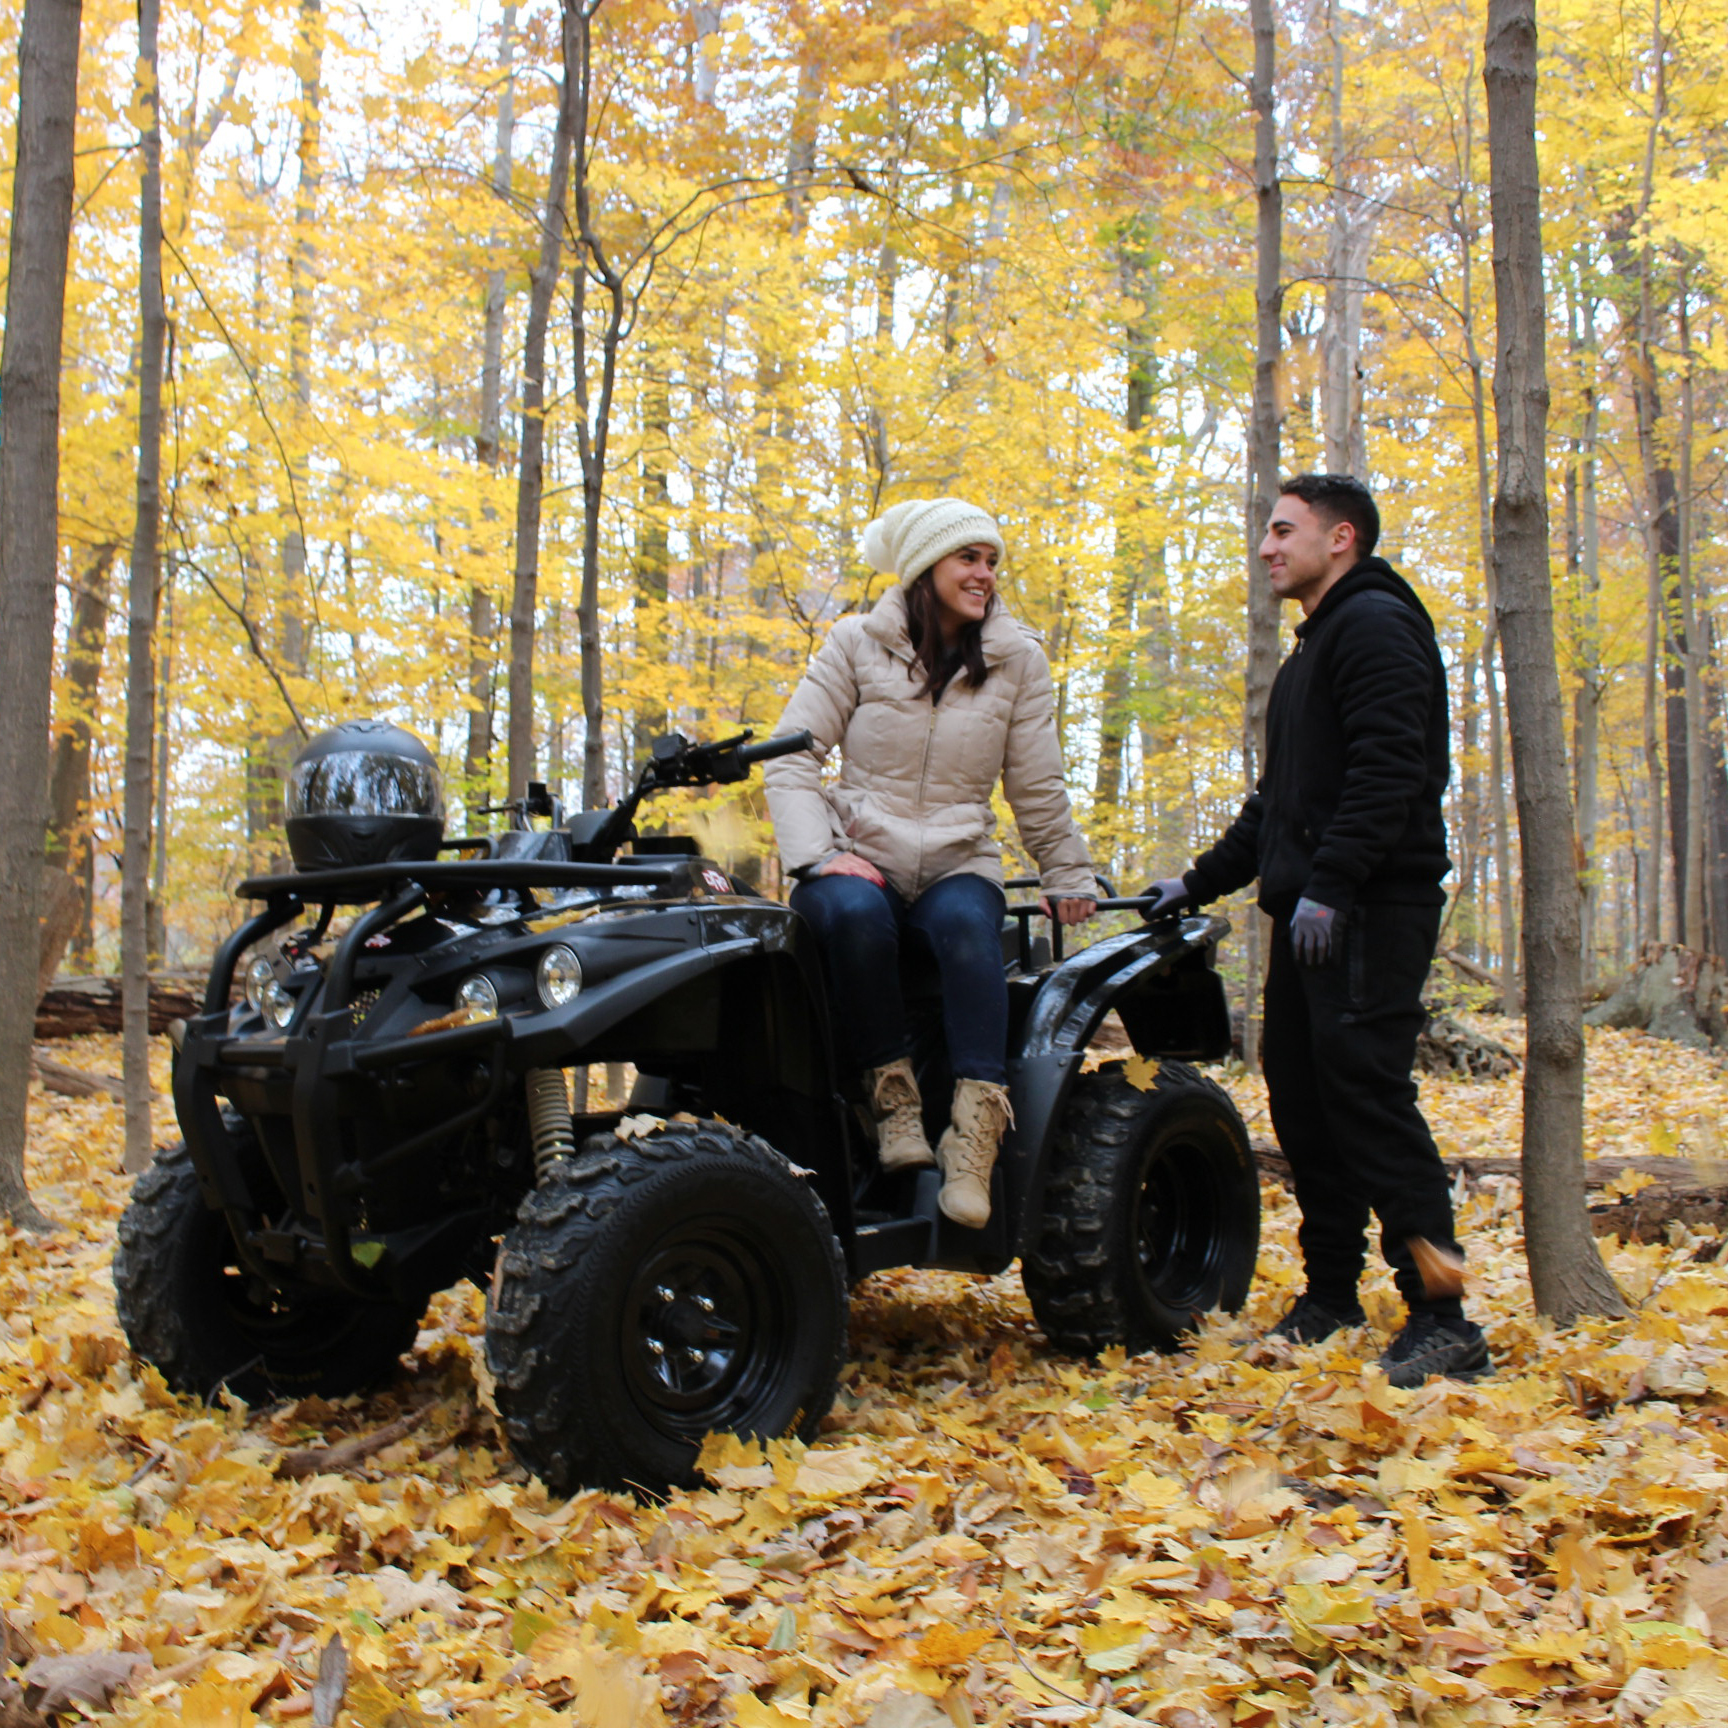 DRR USA Stealth Electric ATV Couple in Nature.jpg